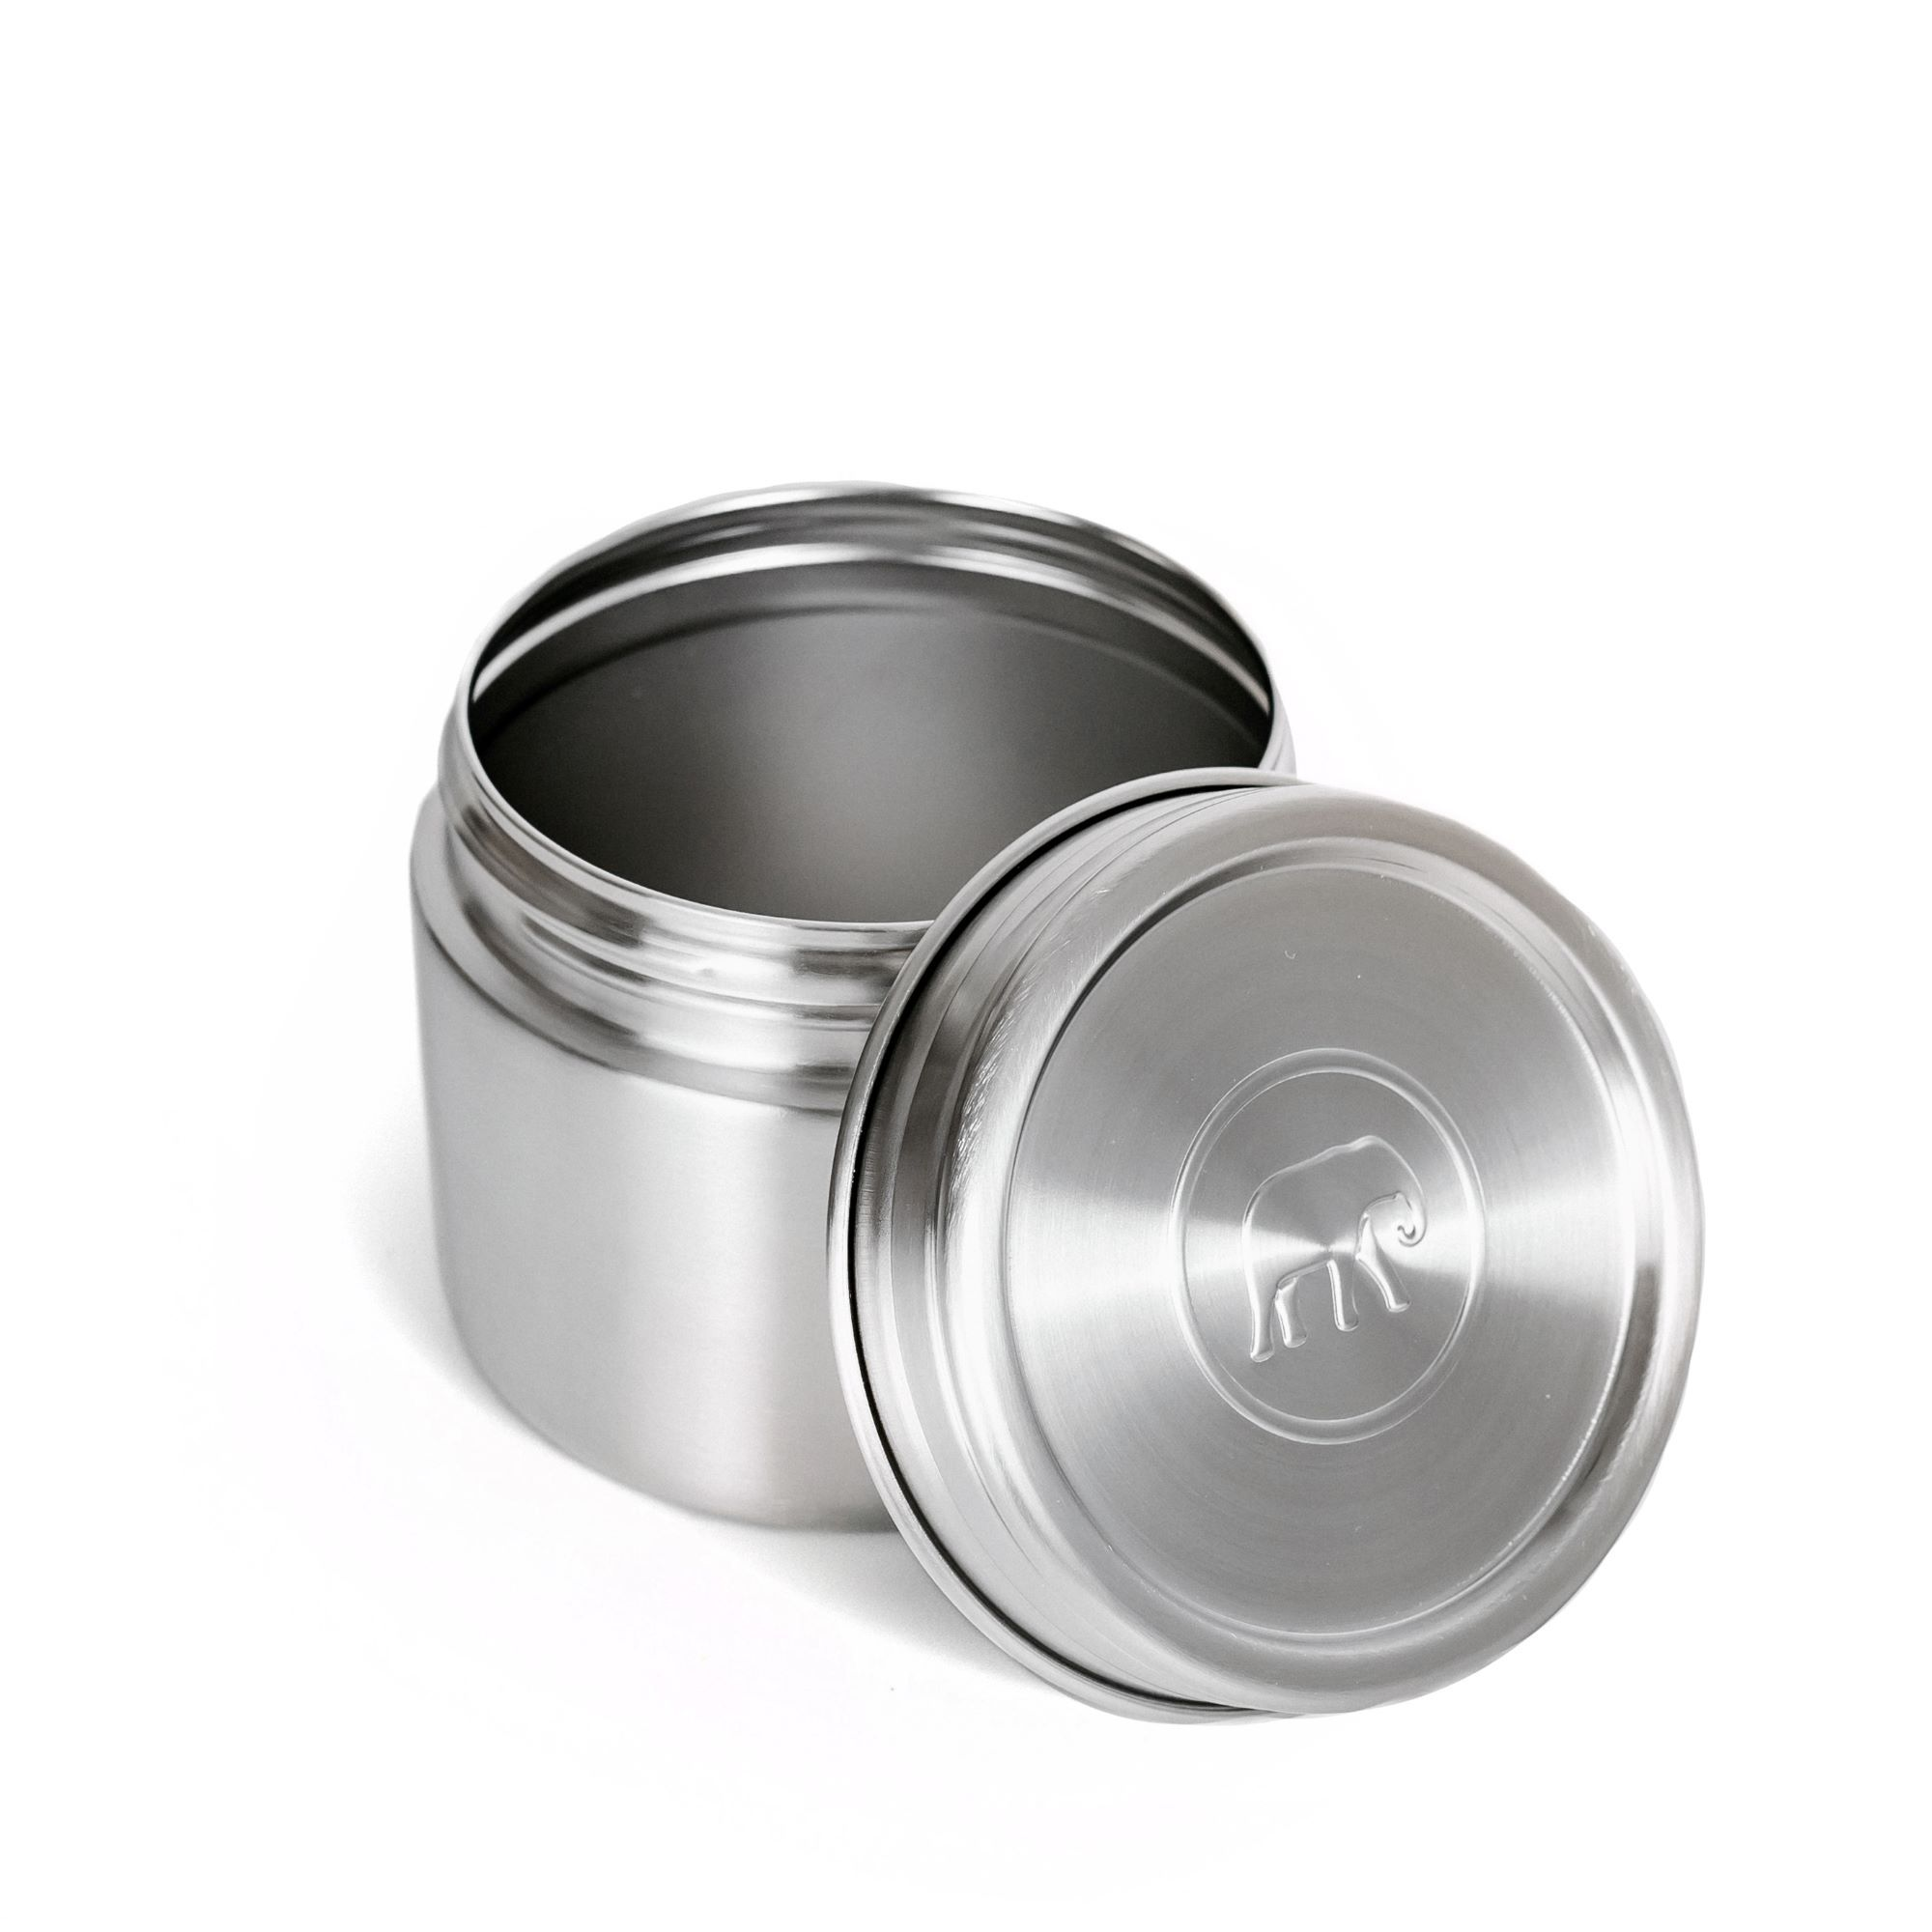 Twist & Lock Leakproof Food Canister 500ml Elephant Box